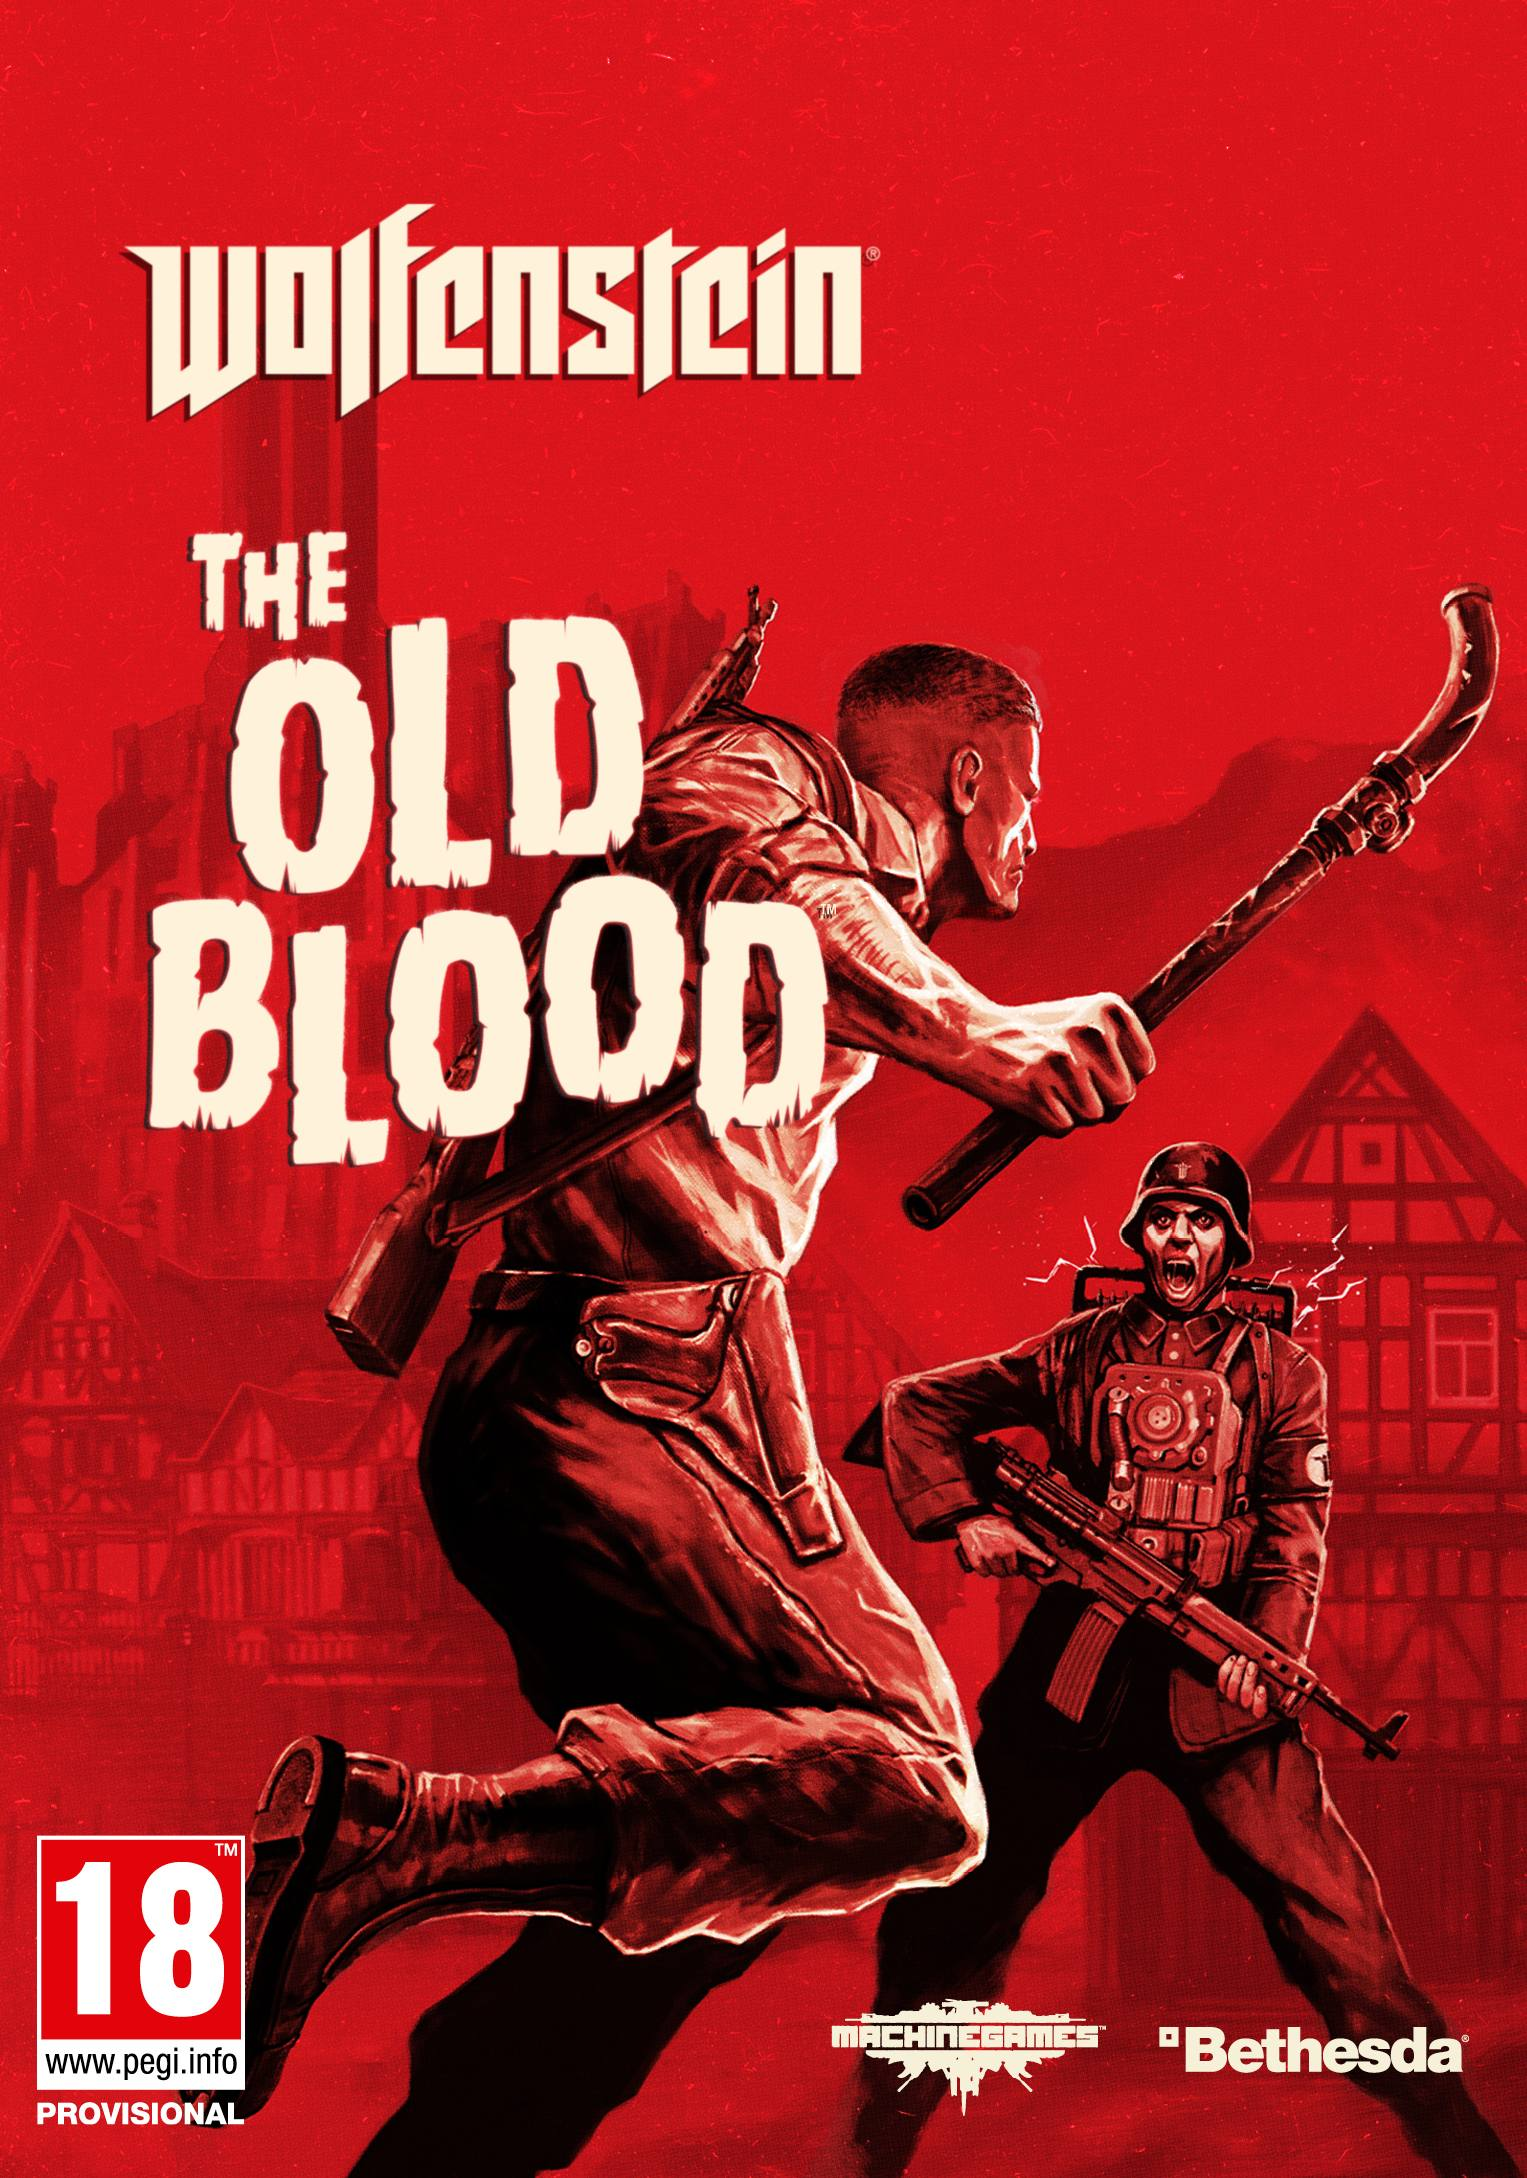 Wolfenstein-The-Old-Blood-04-03-15-cover-Art-EURO1